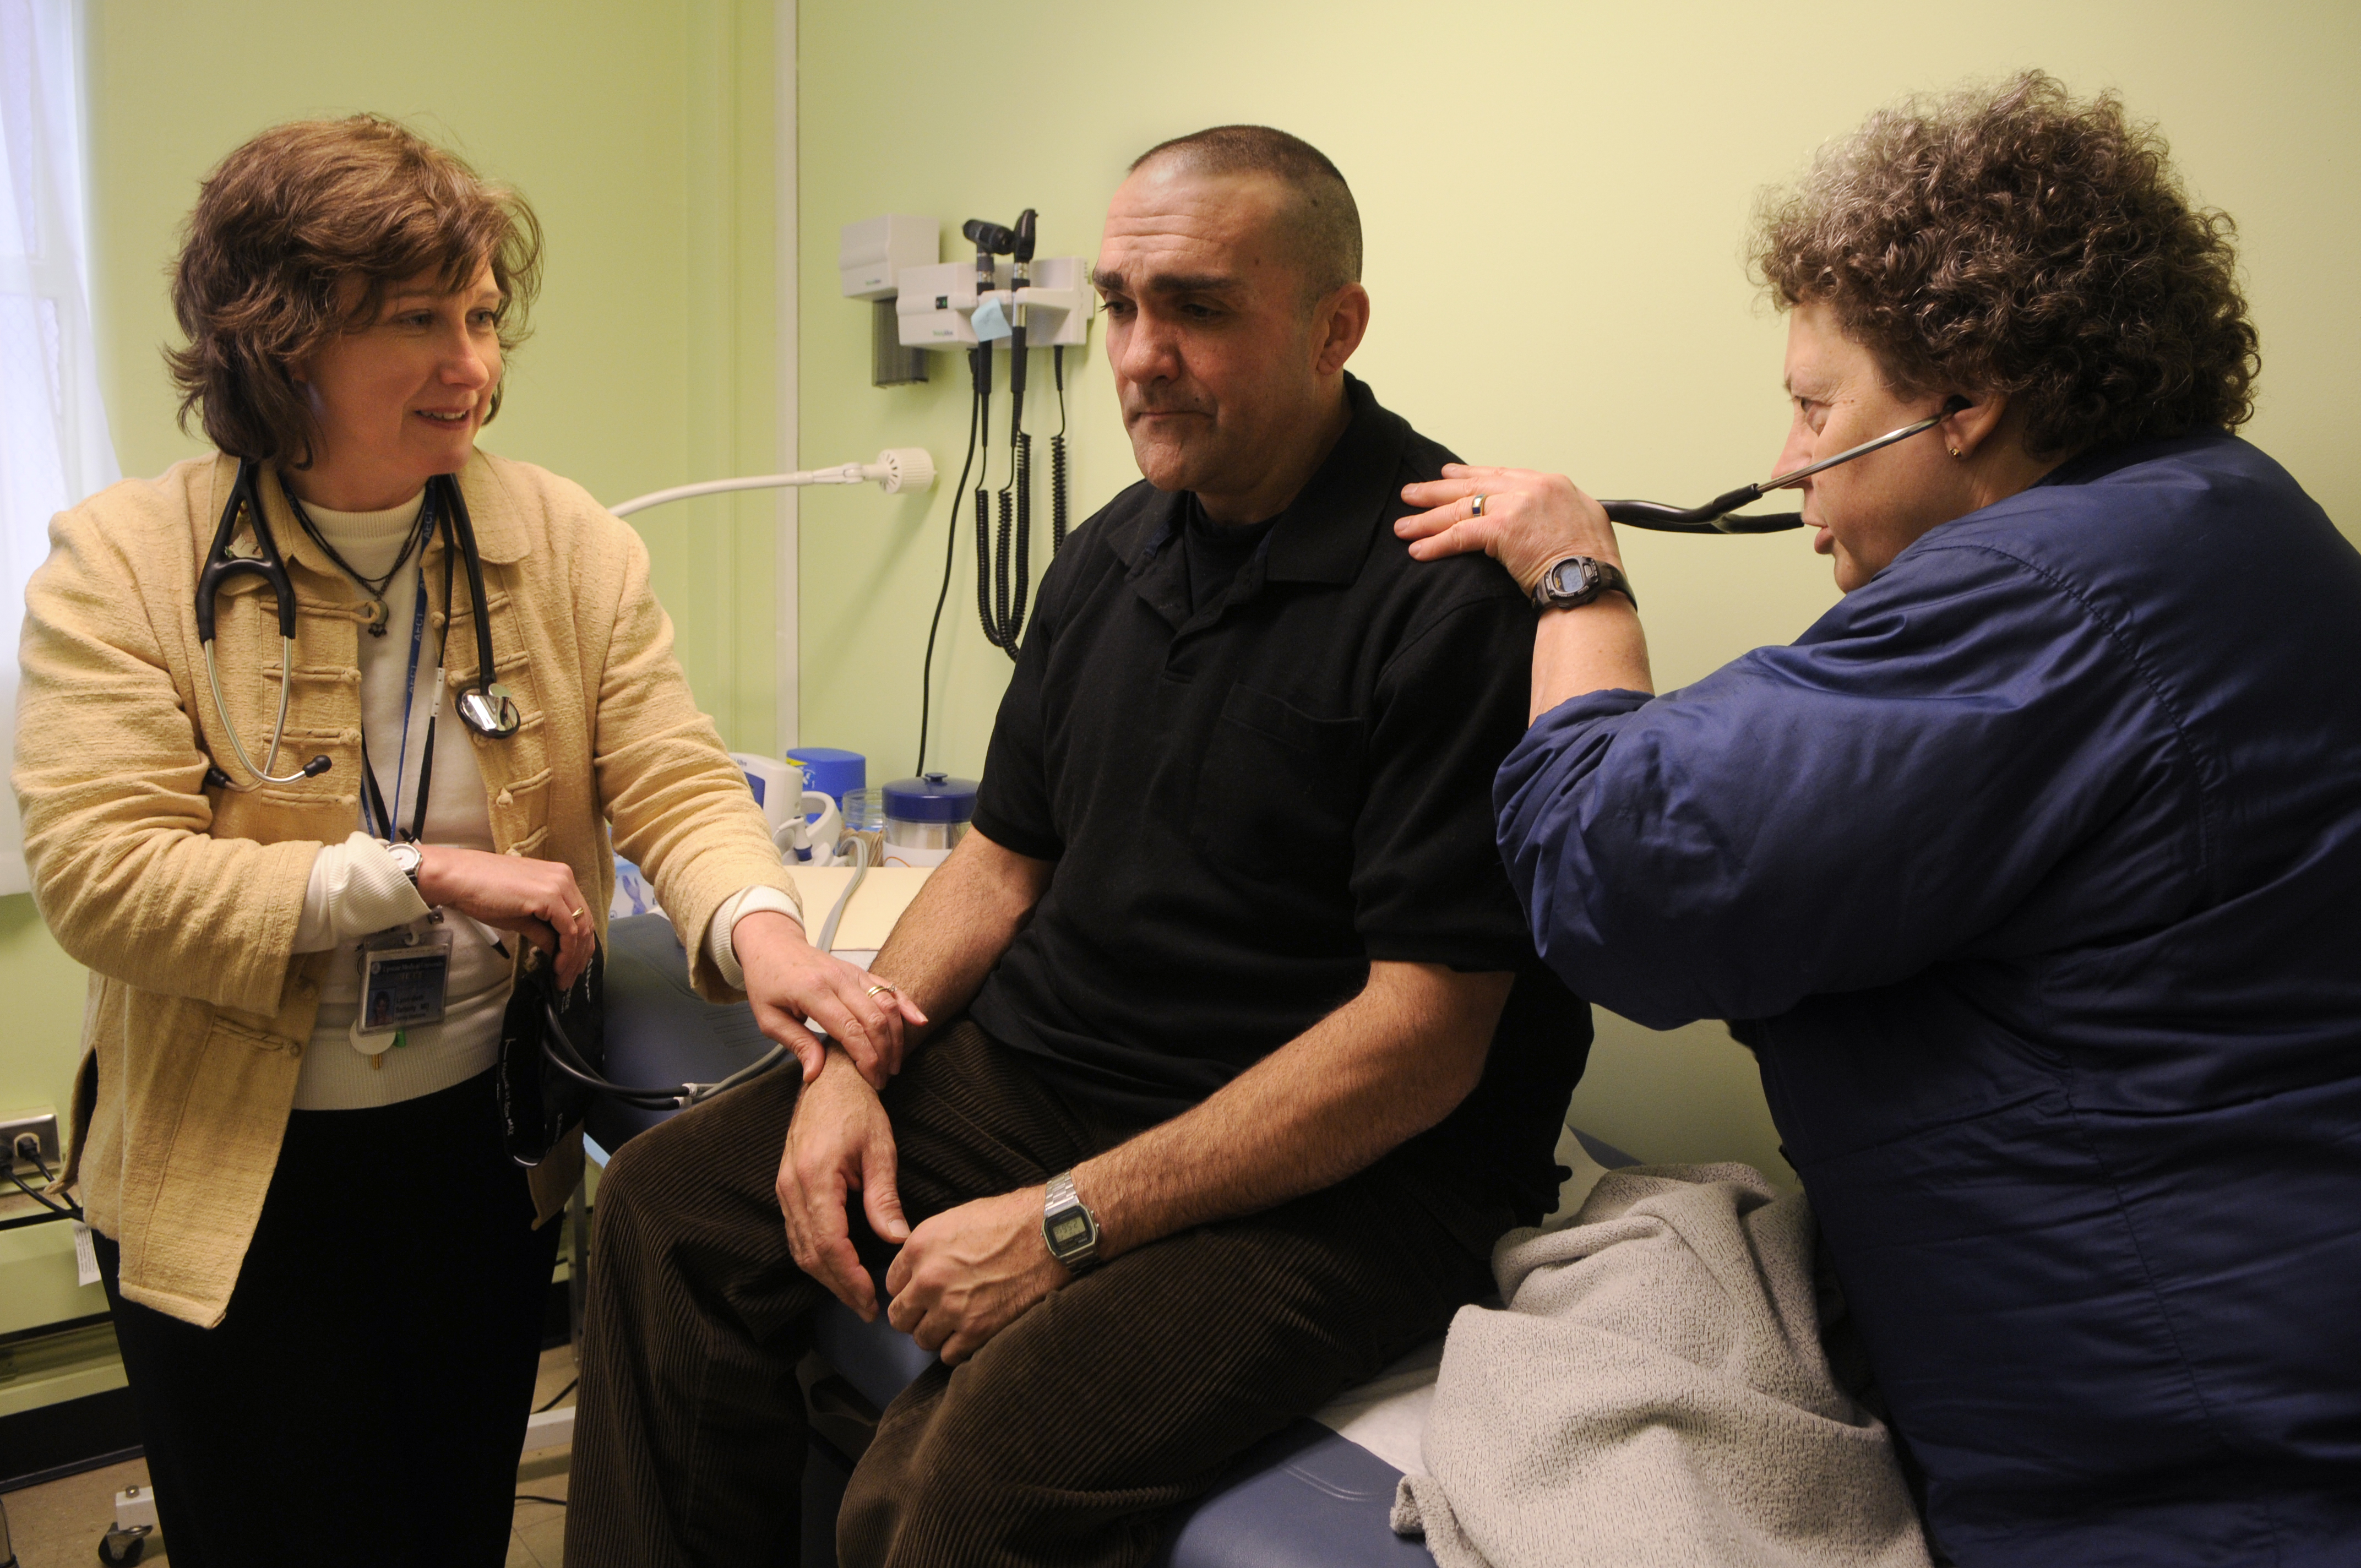 Free Syracuse medical clinic that served thousands of uninsured patients closes